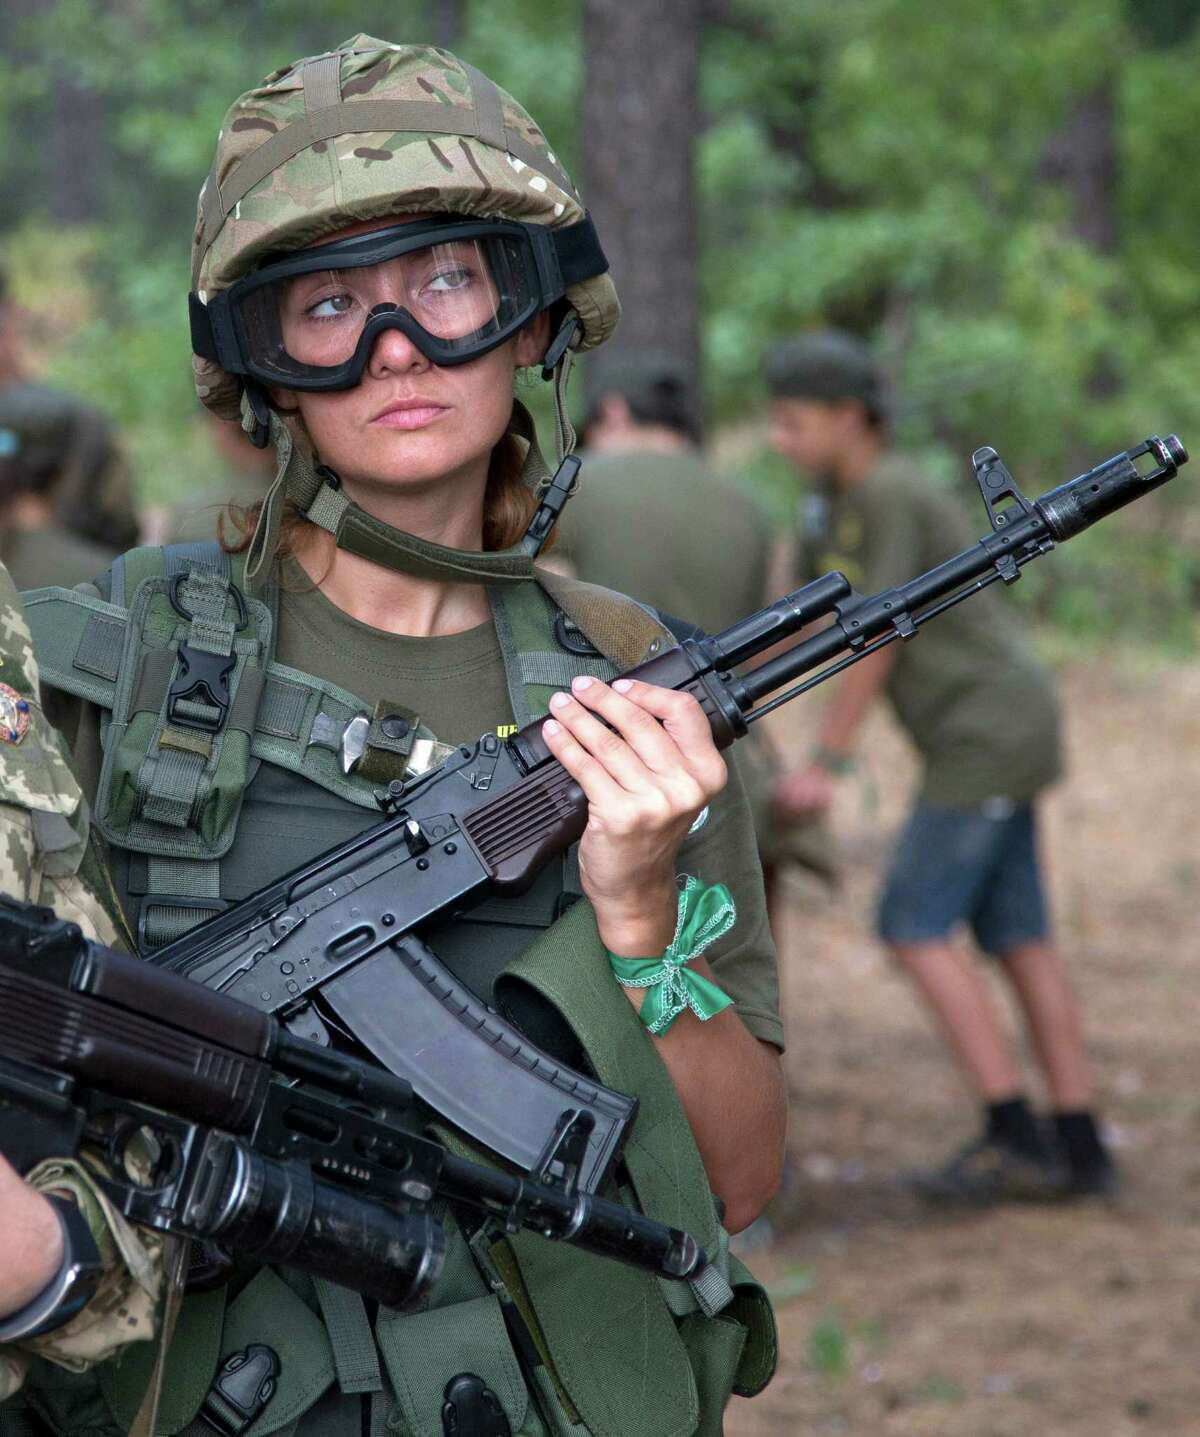 A school teacher in a military uniform watches as servicemen teach children to operate weapons at a military training ground of Ukraine's National Guard outside the village of Stare, the Kiev region, Ukraine, Saturday, Aug. 29, 2015.